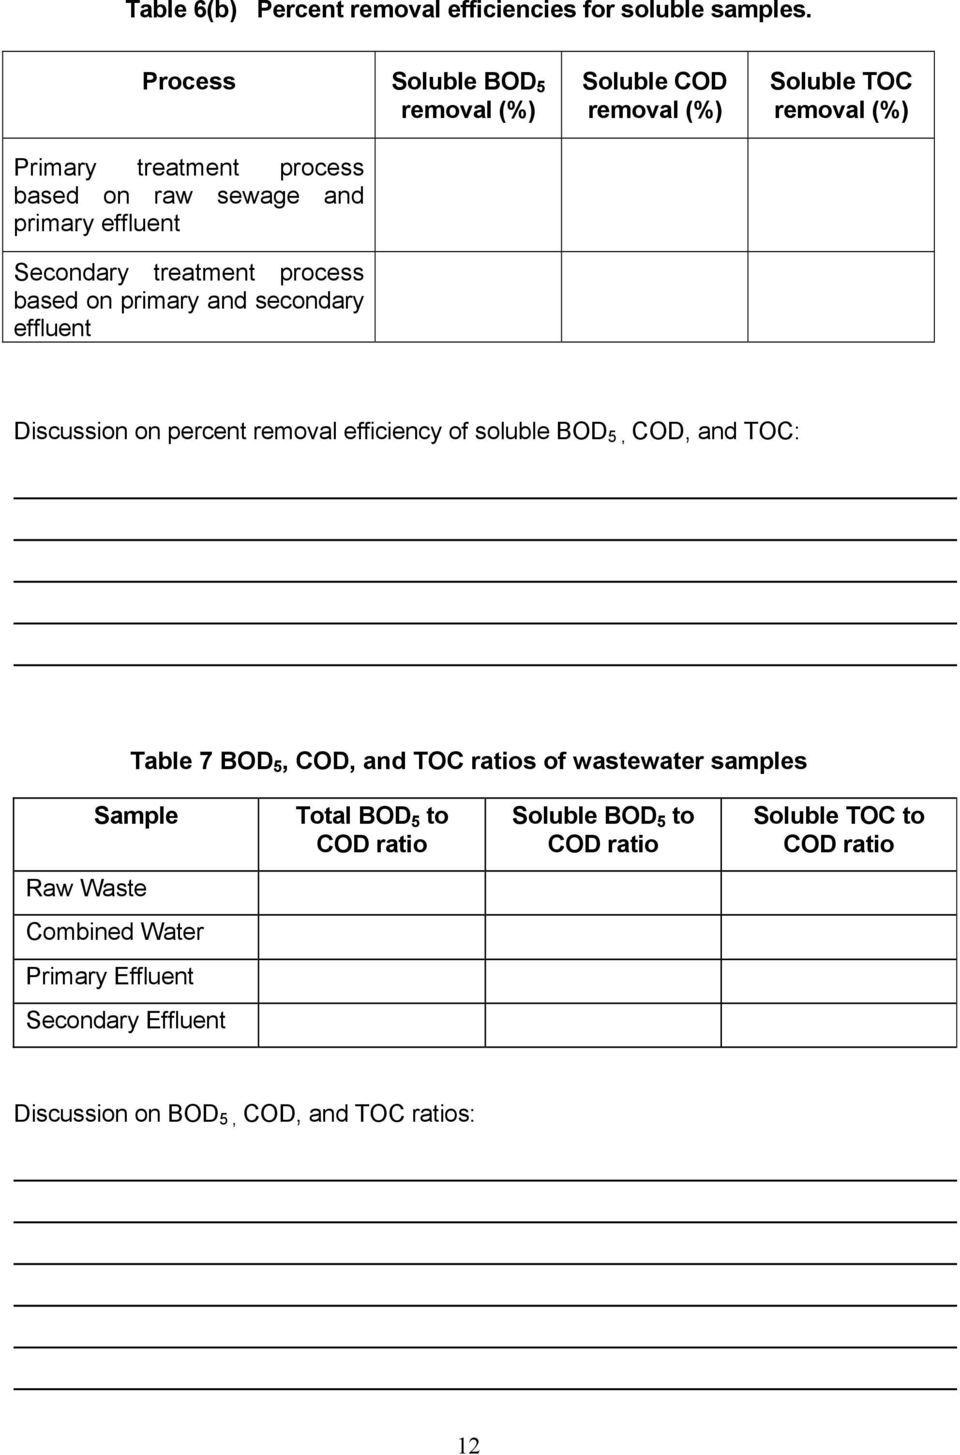 secondary effluent Soluble COD removal (%) Soluble TOC removal (%) Discussion on percent removal efficiency of soluble BOD 5, COD, and TOC: Table 7